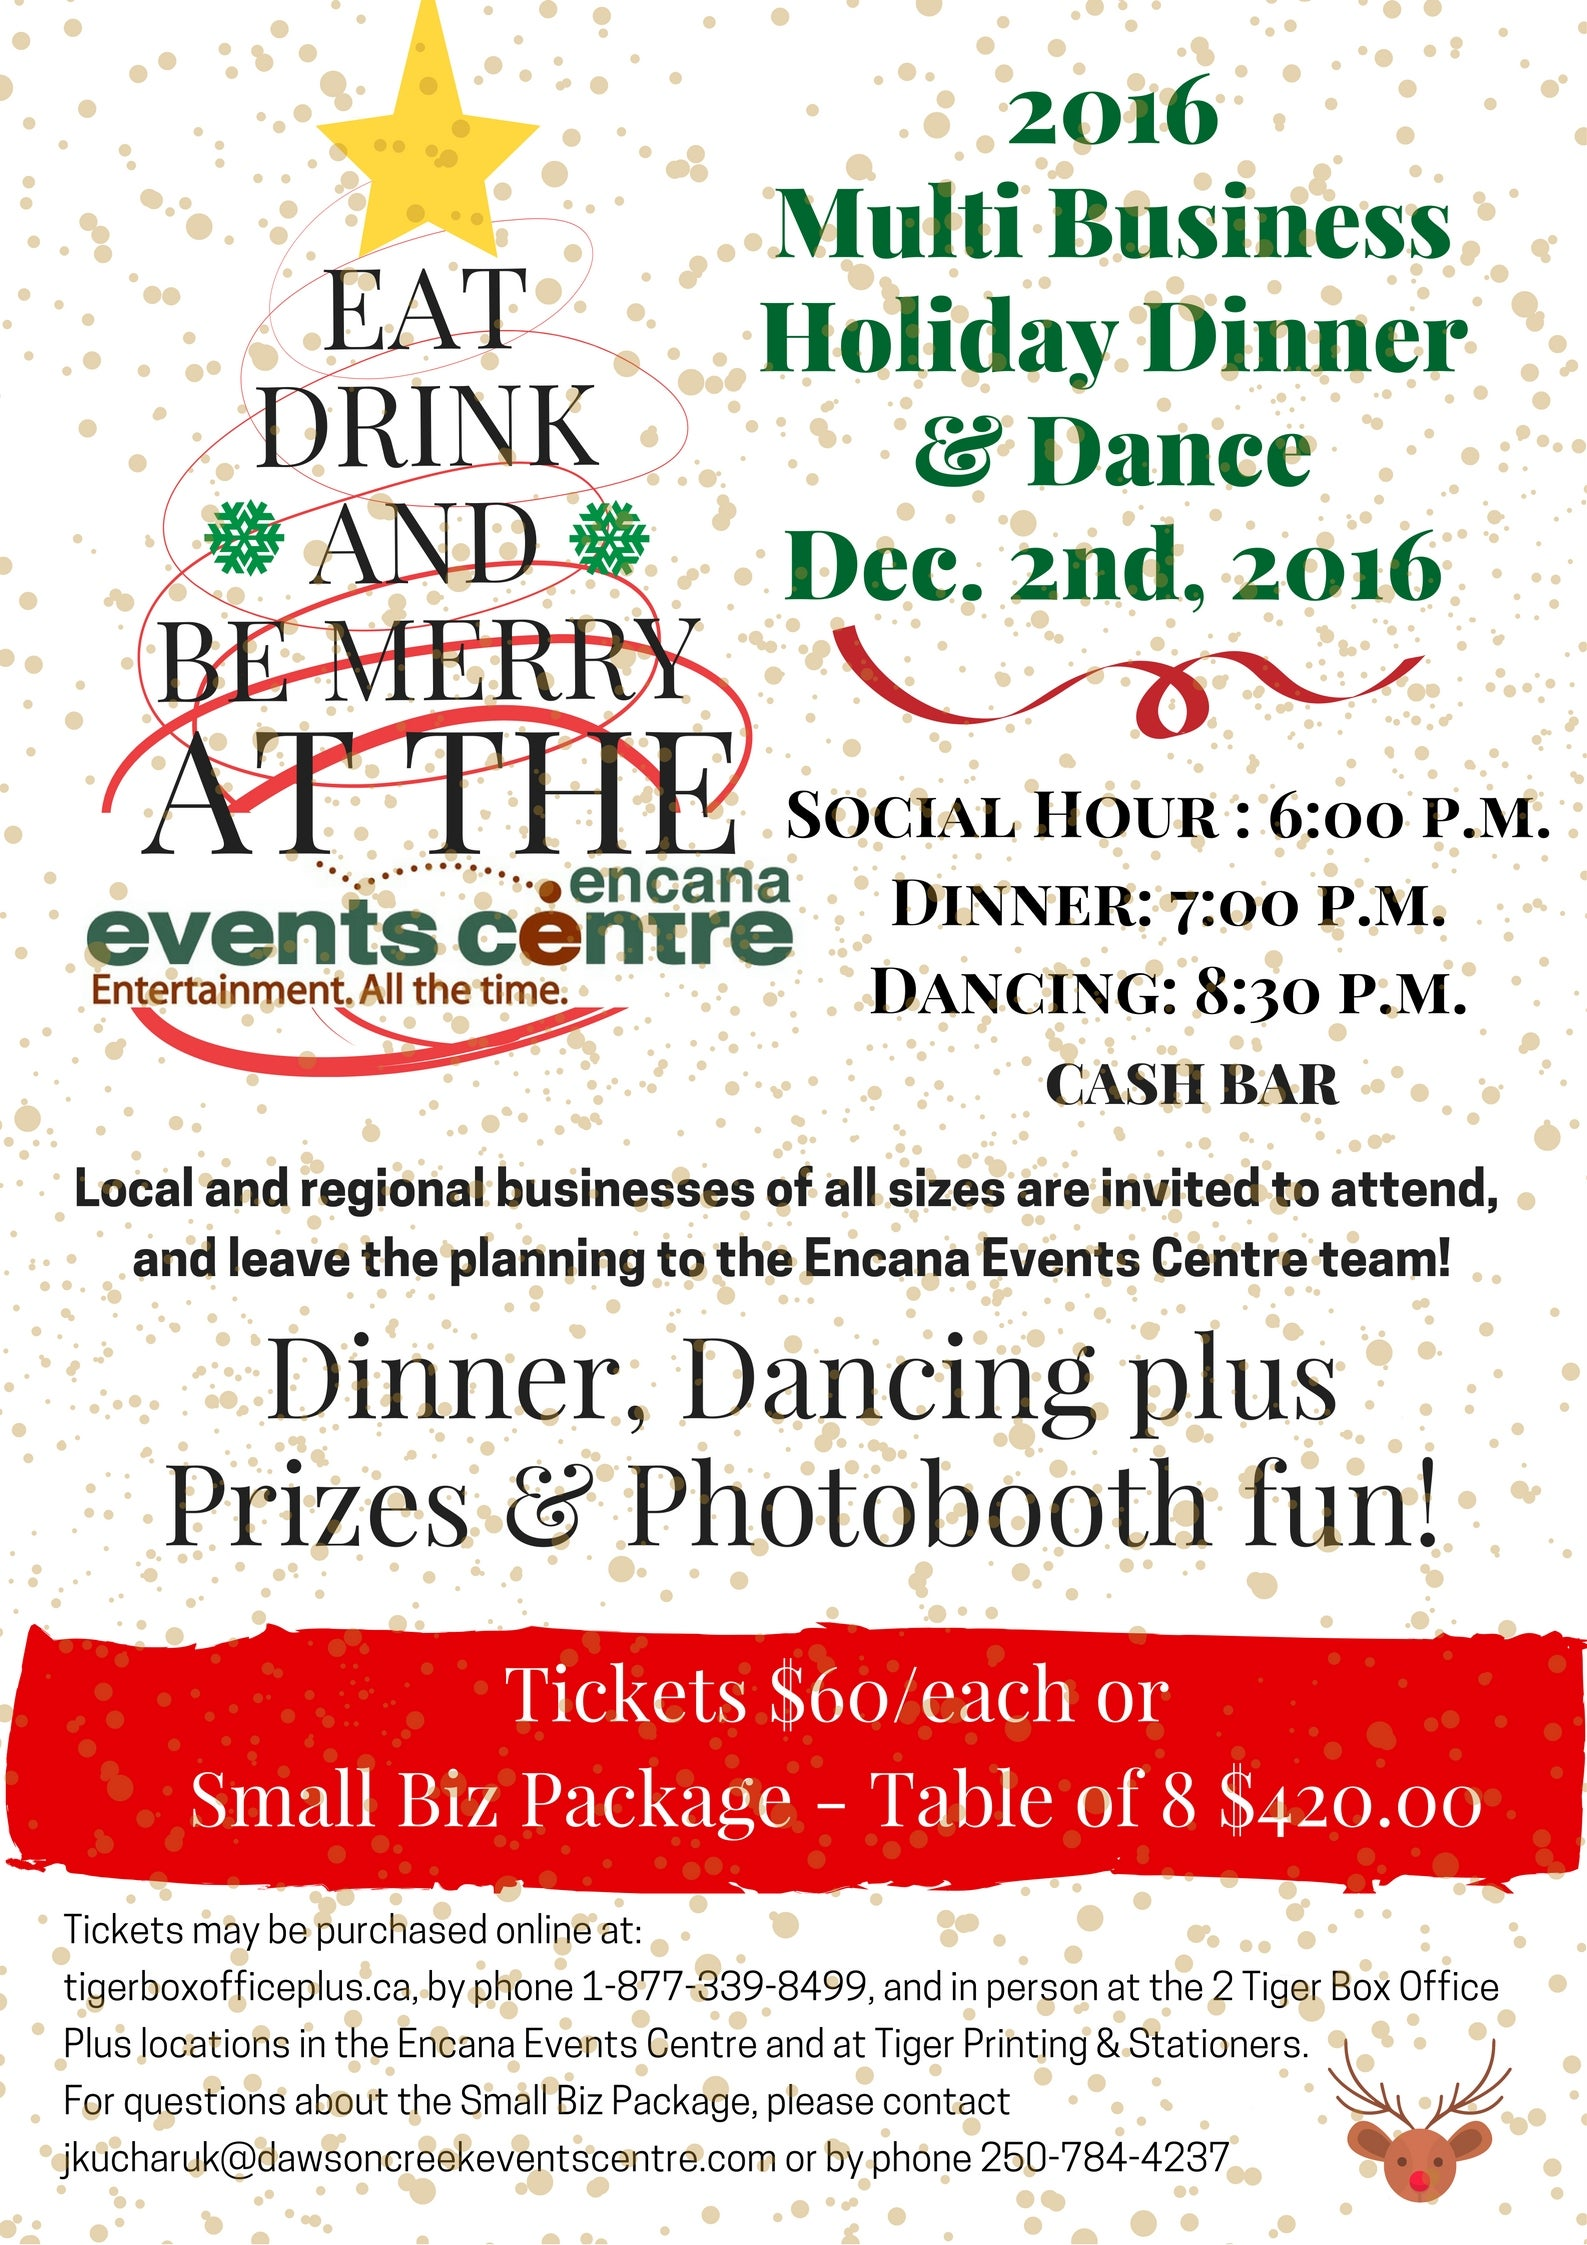 SOLD OUT - 2016 Multi Business Holiday Dinner & Dance | Encana ...